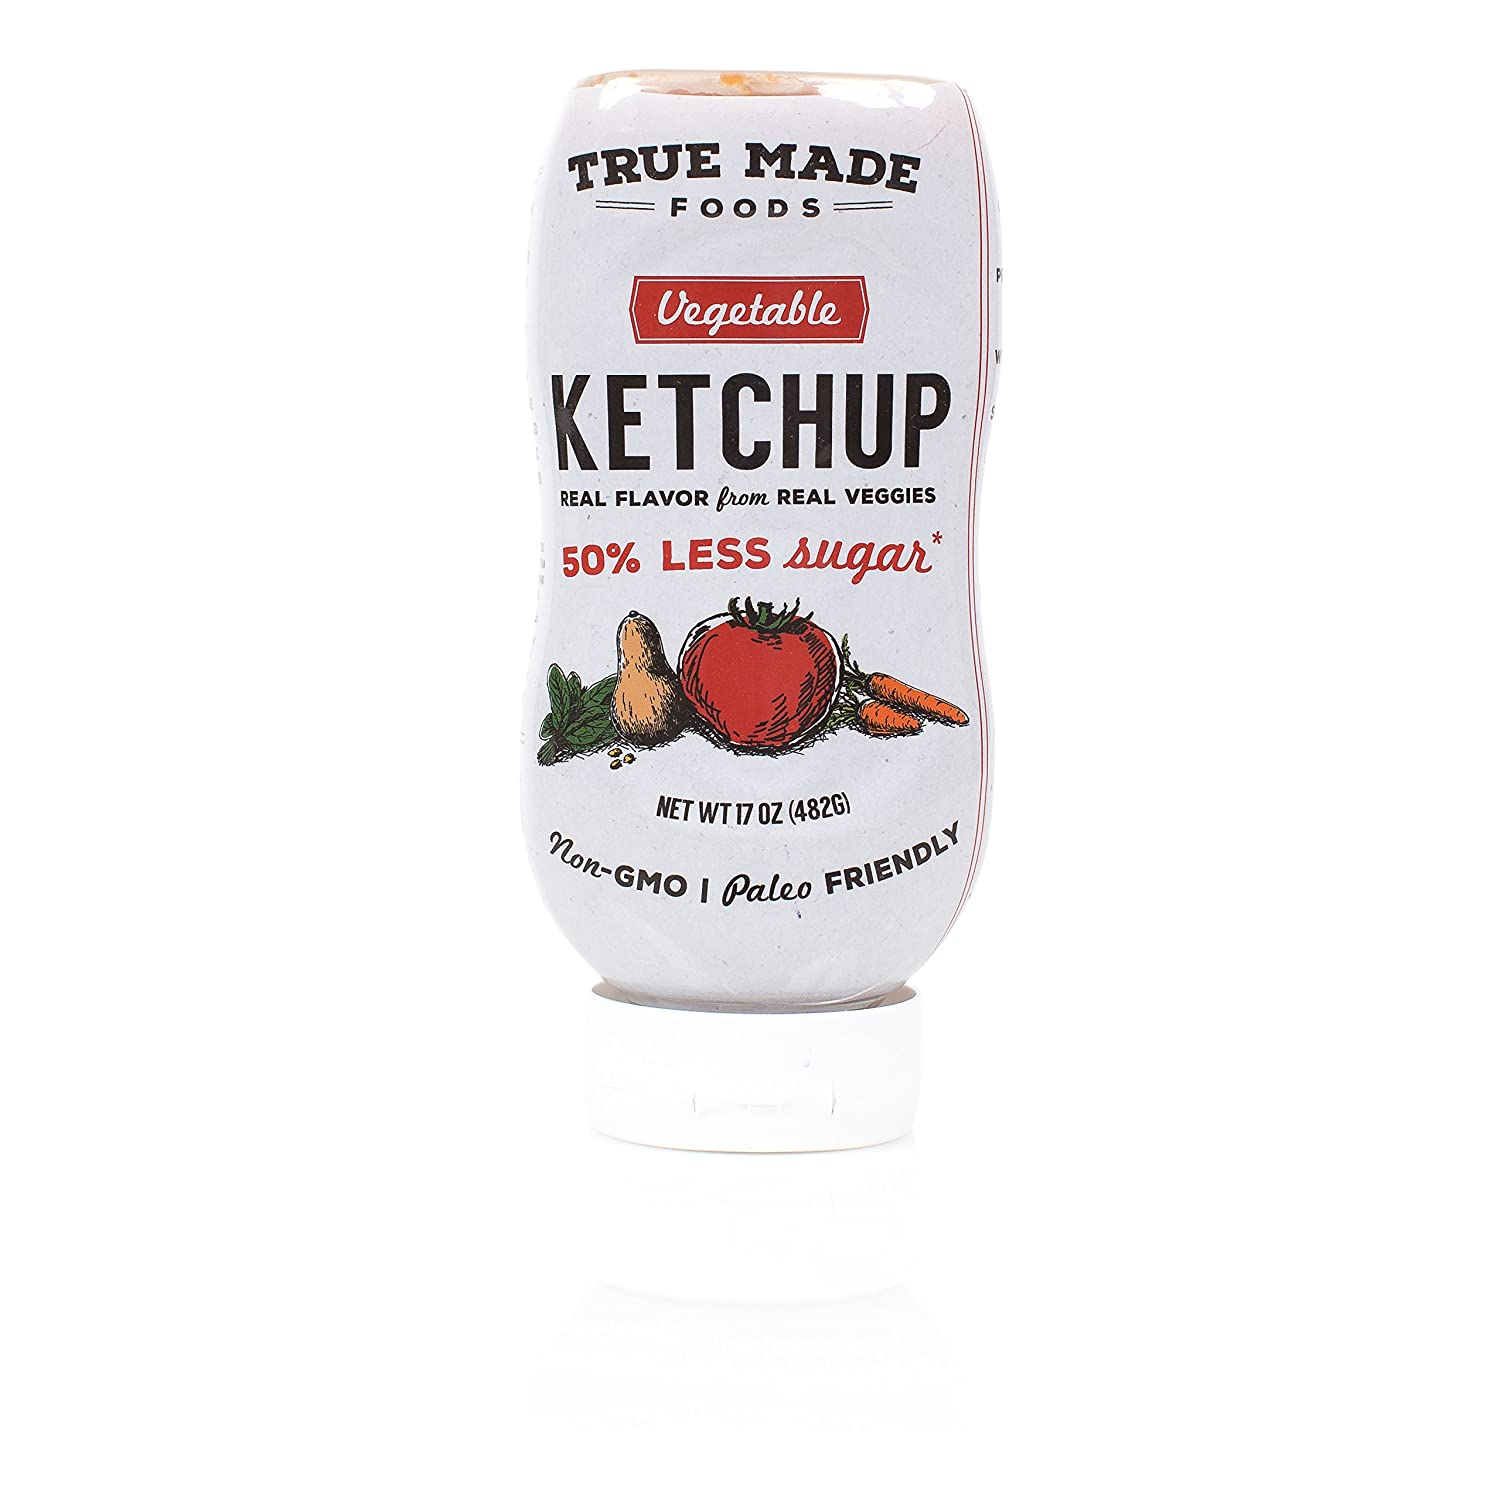 True Made Foods Vegetable Ketchup, Paleo Friendly, Non-GMO, Low Sugar, 17oz Squeeze Bottle, Pack of 6